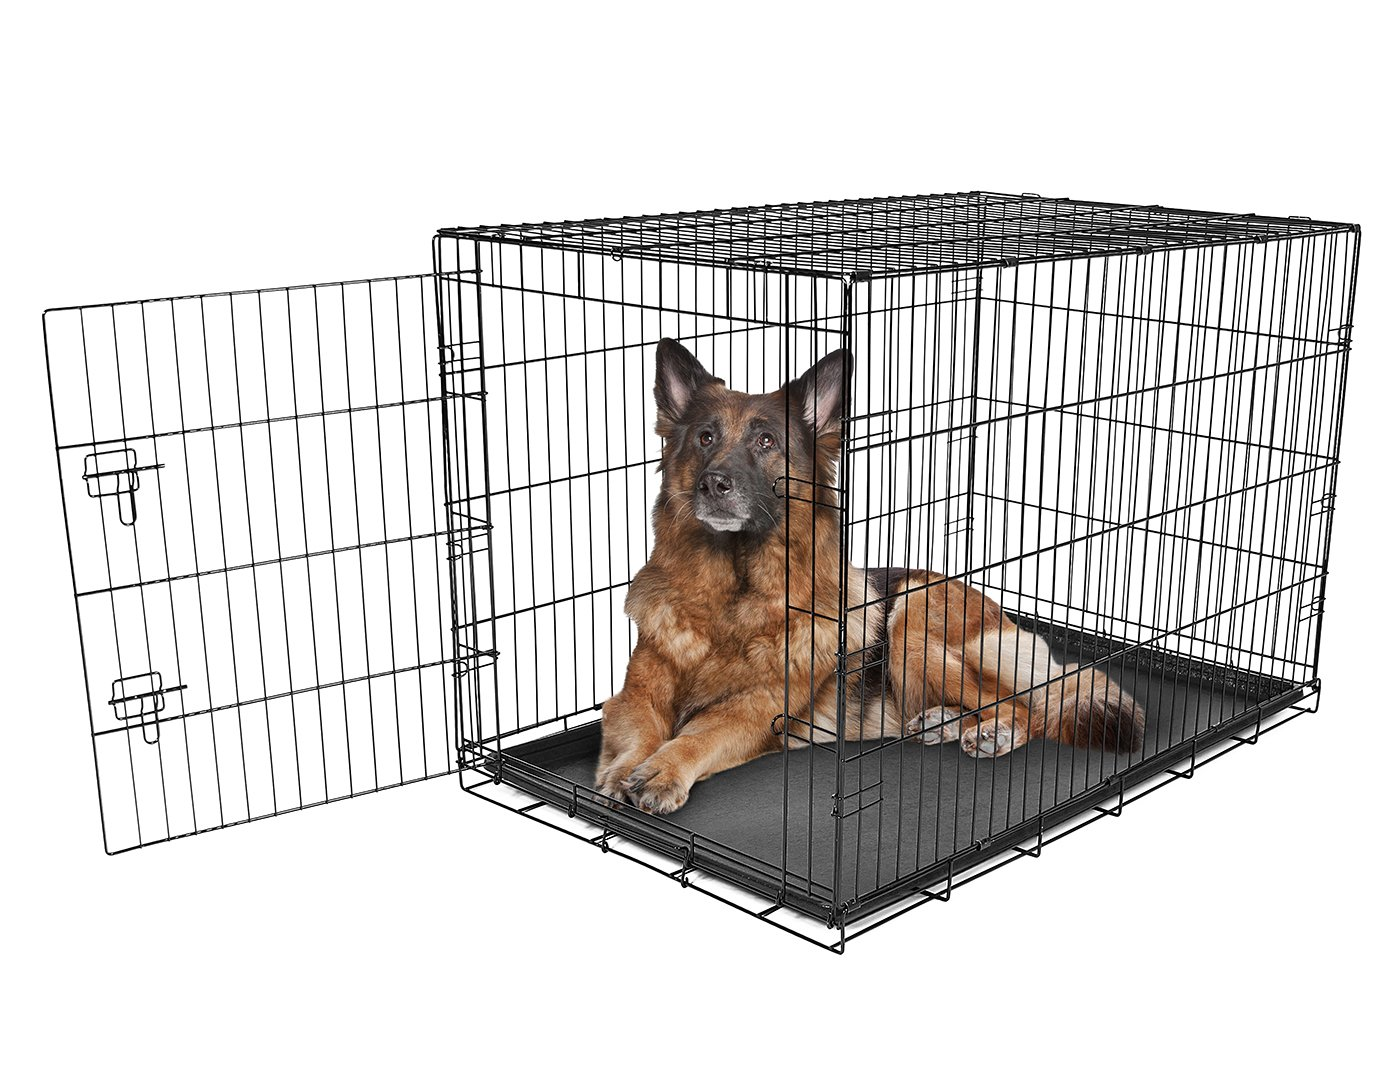 Carlson Pet Products SECURE AND FOLDABLE Single Door Metal Dog Crate, Extra Large